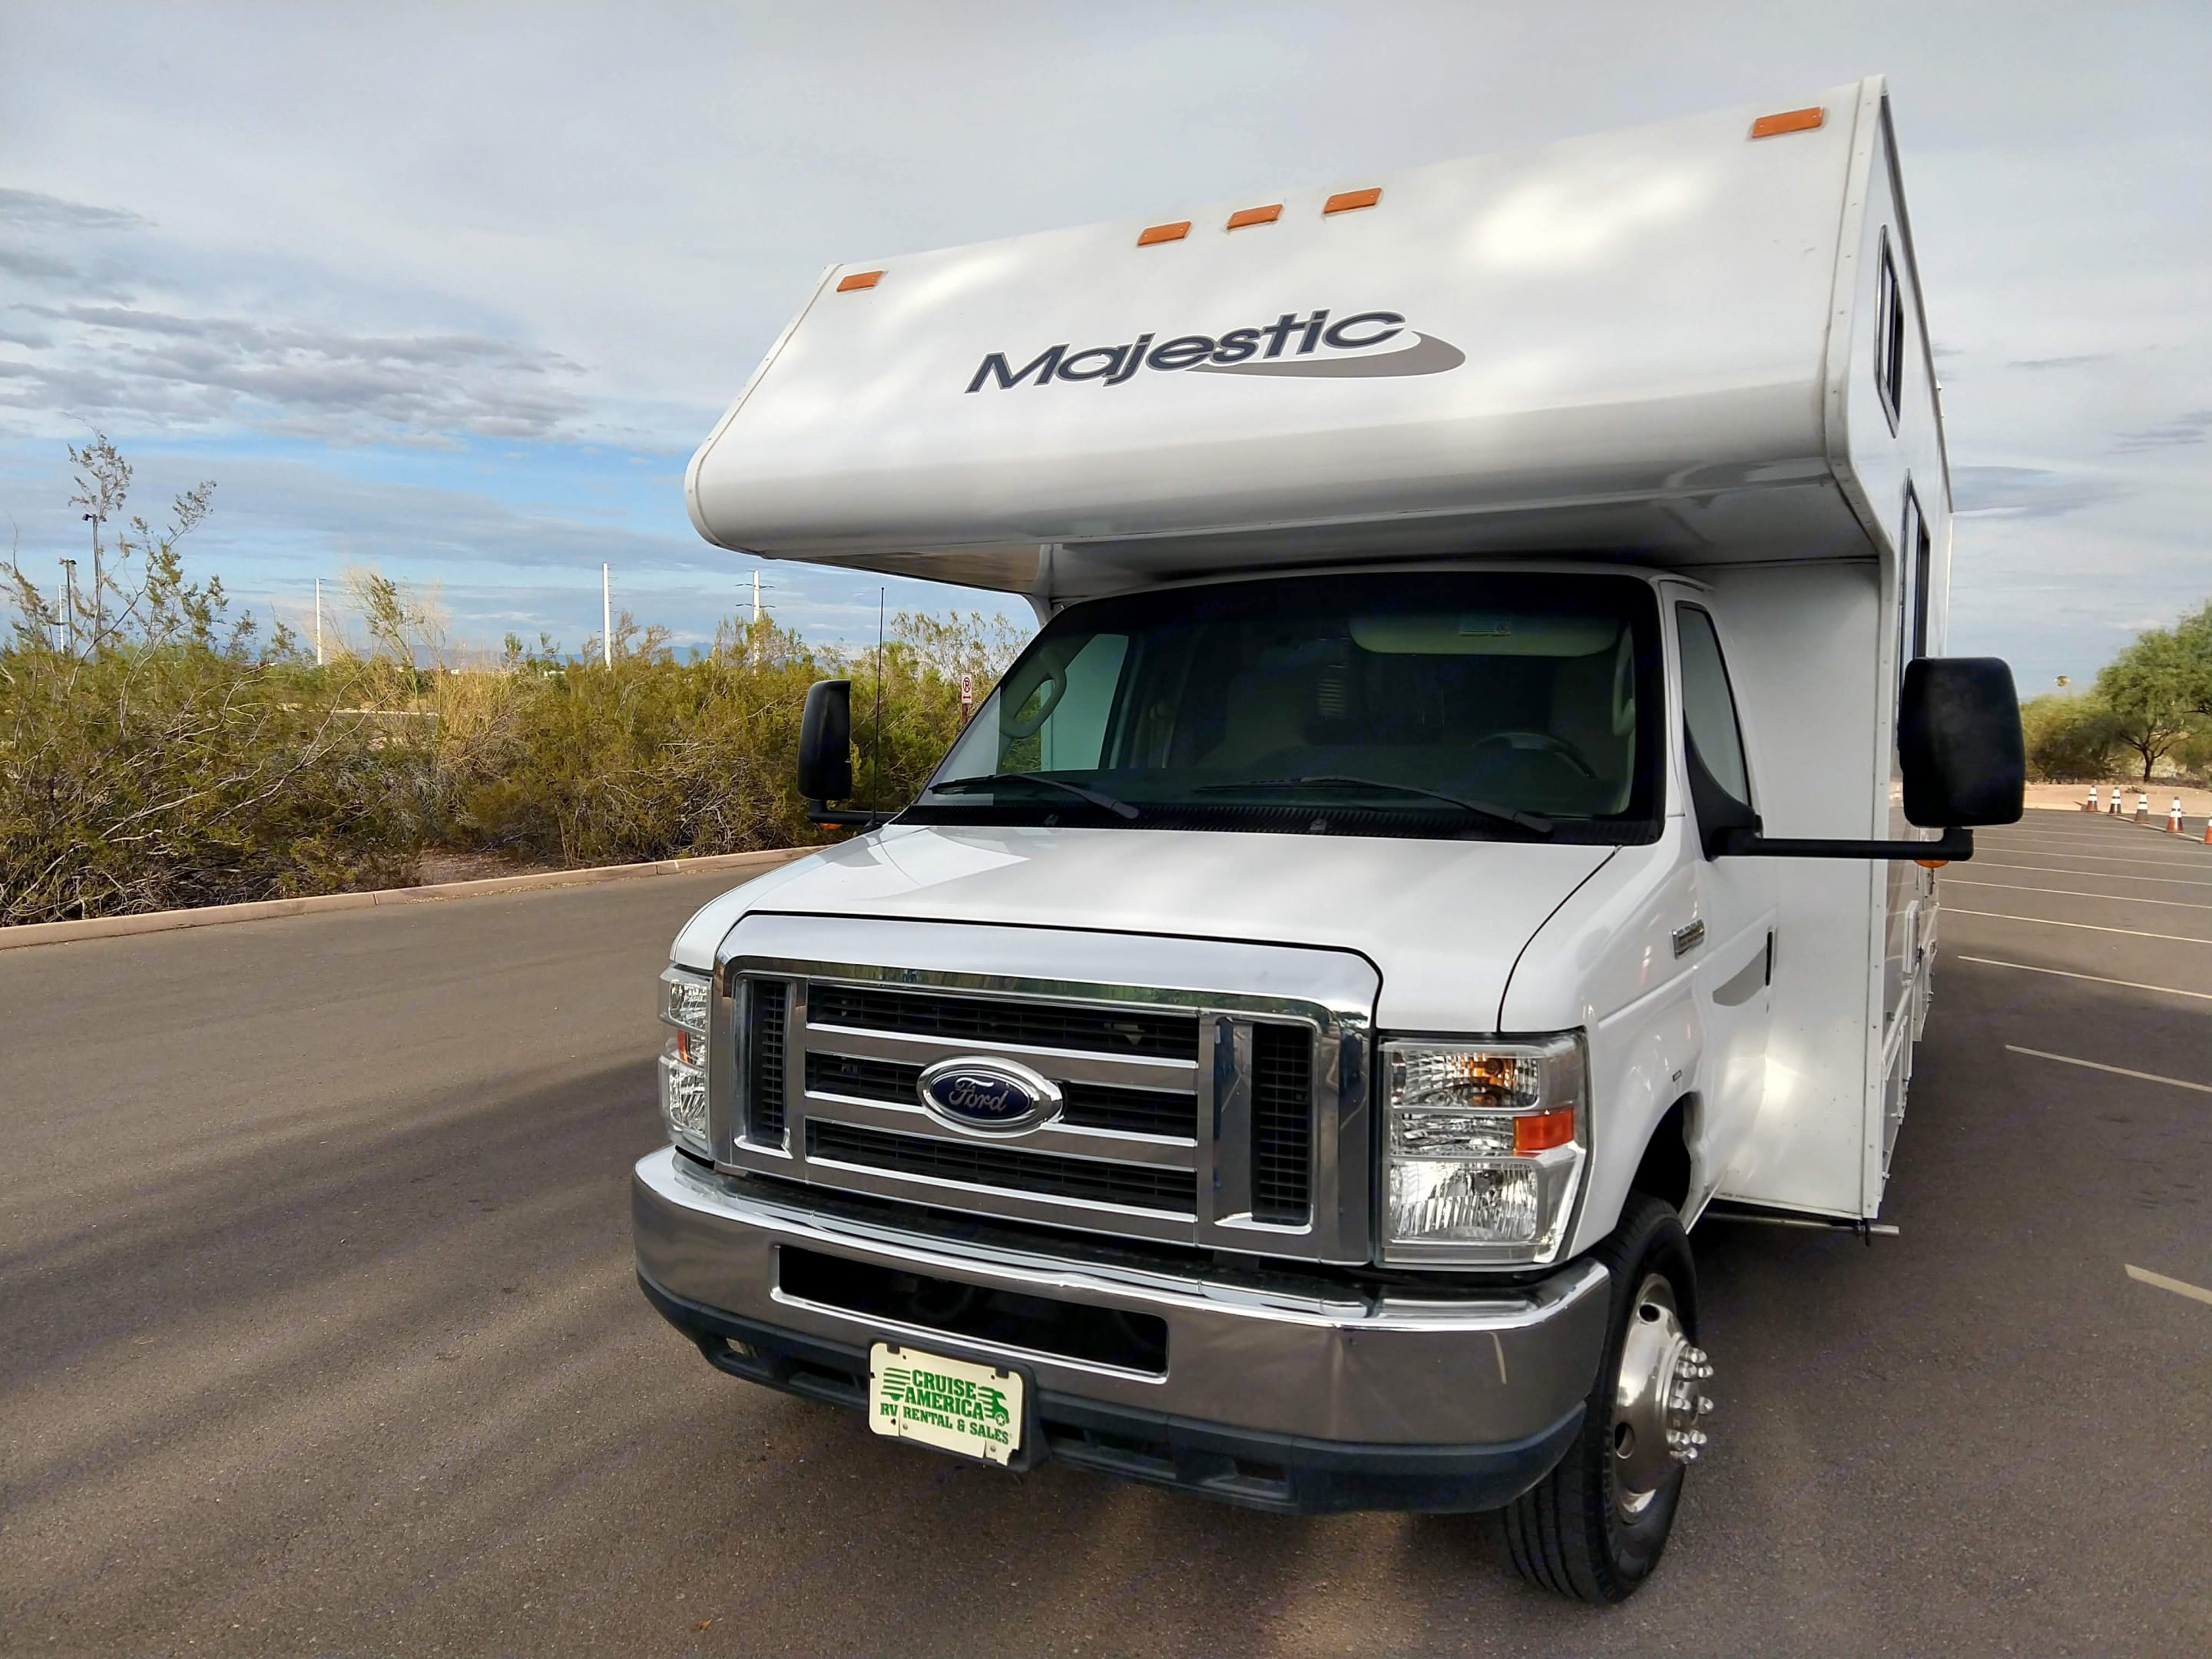 Front of the RV View. Thor Motor Coach Four Winds Majestic 2012